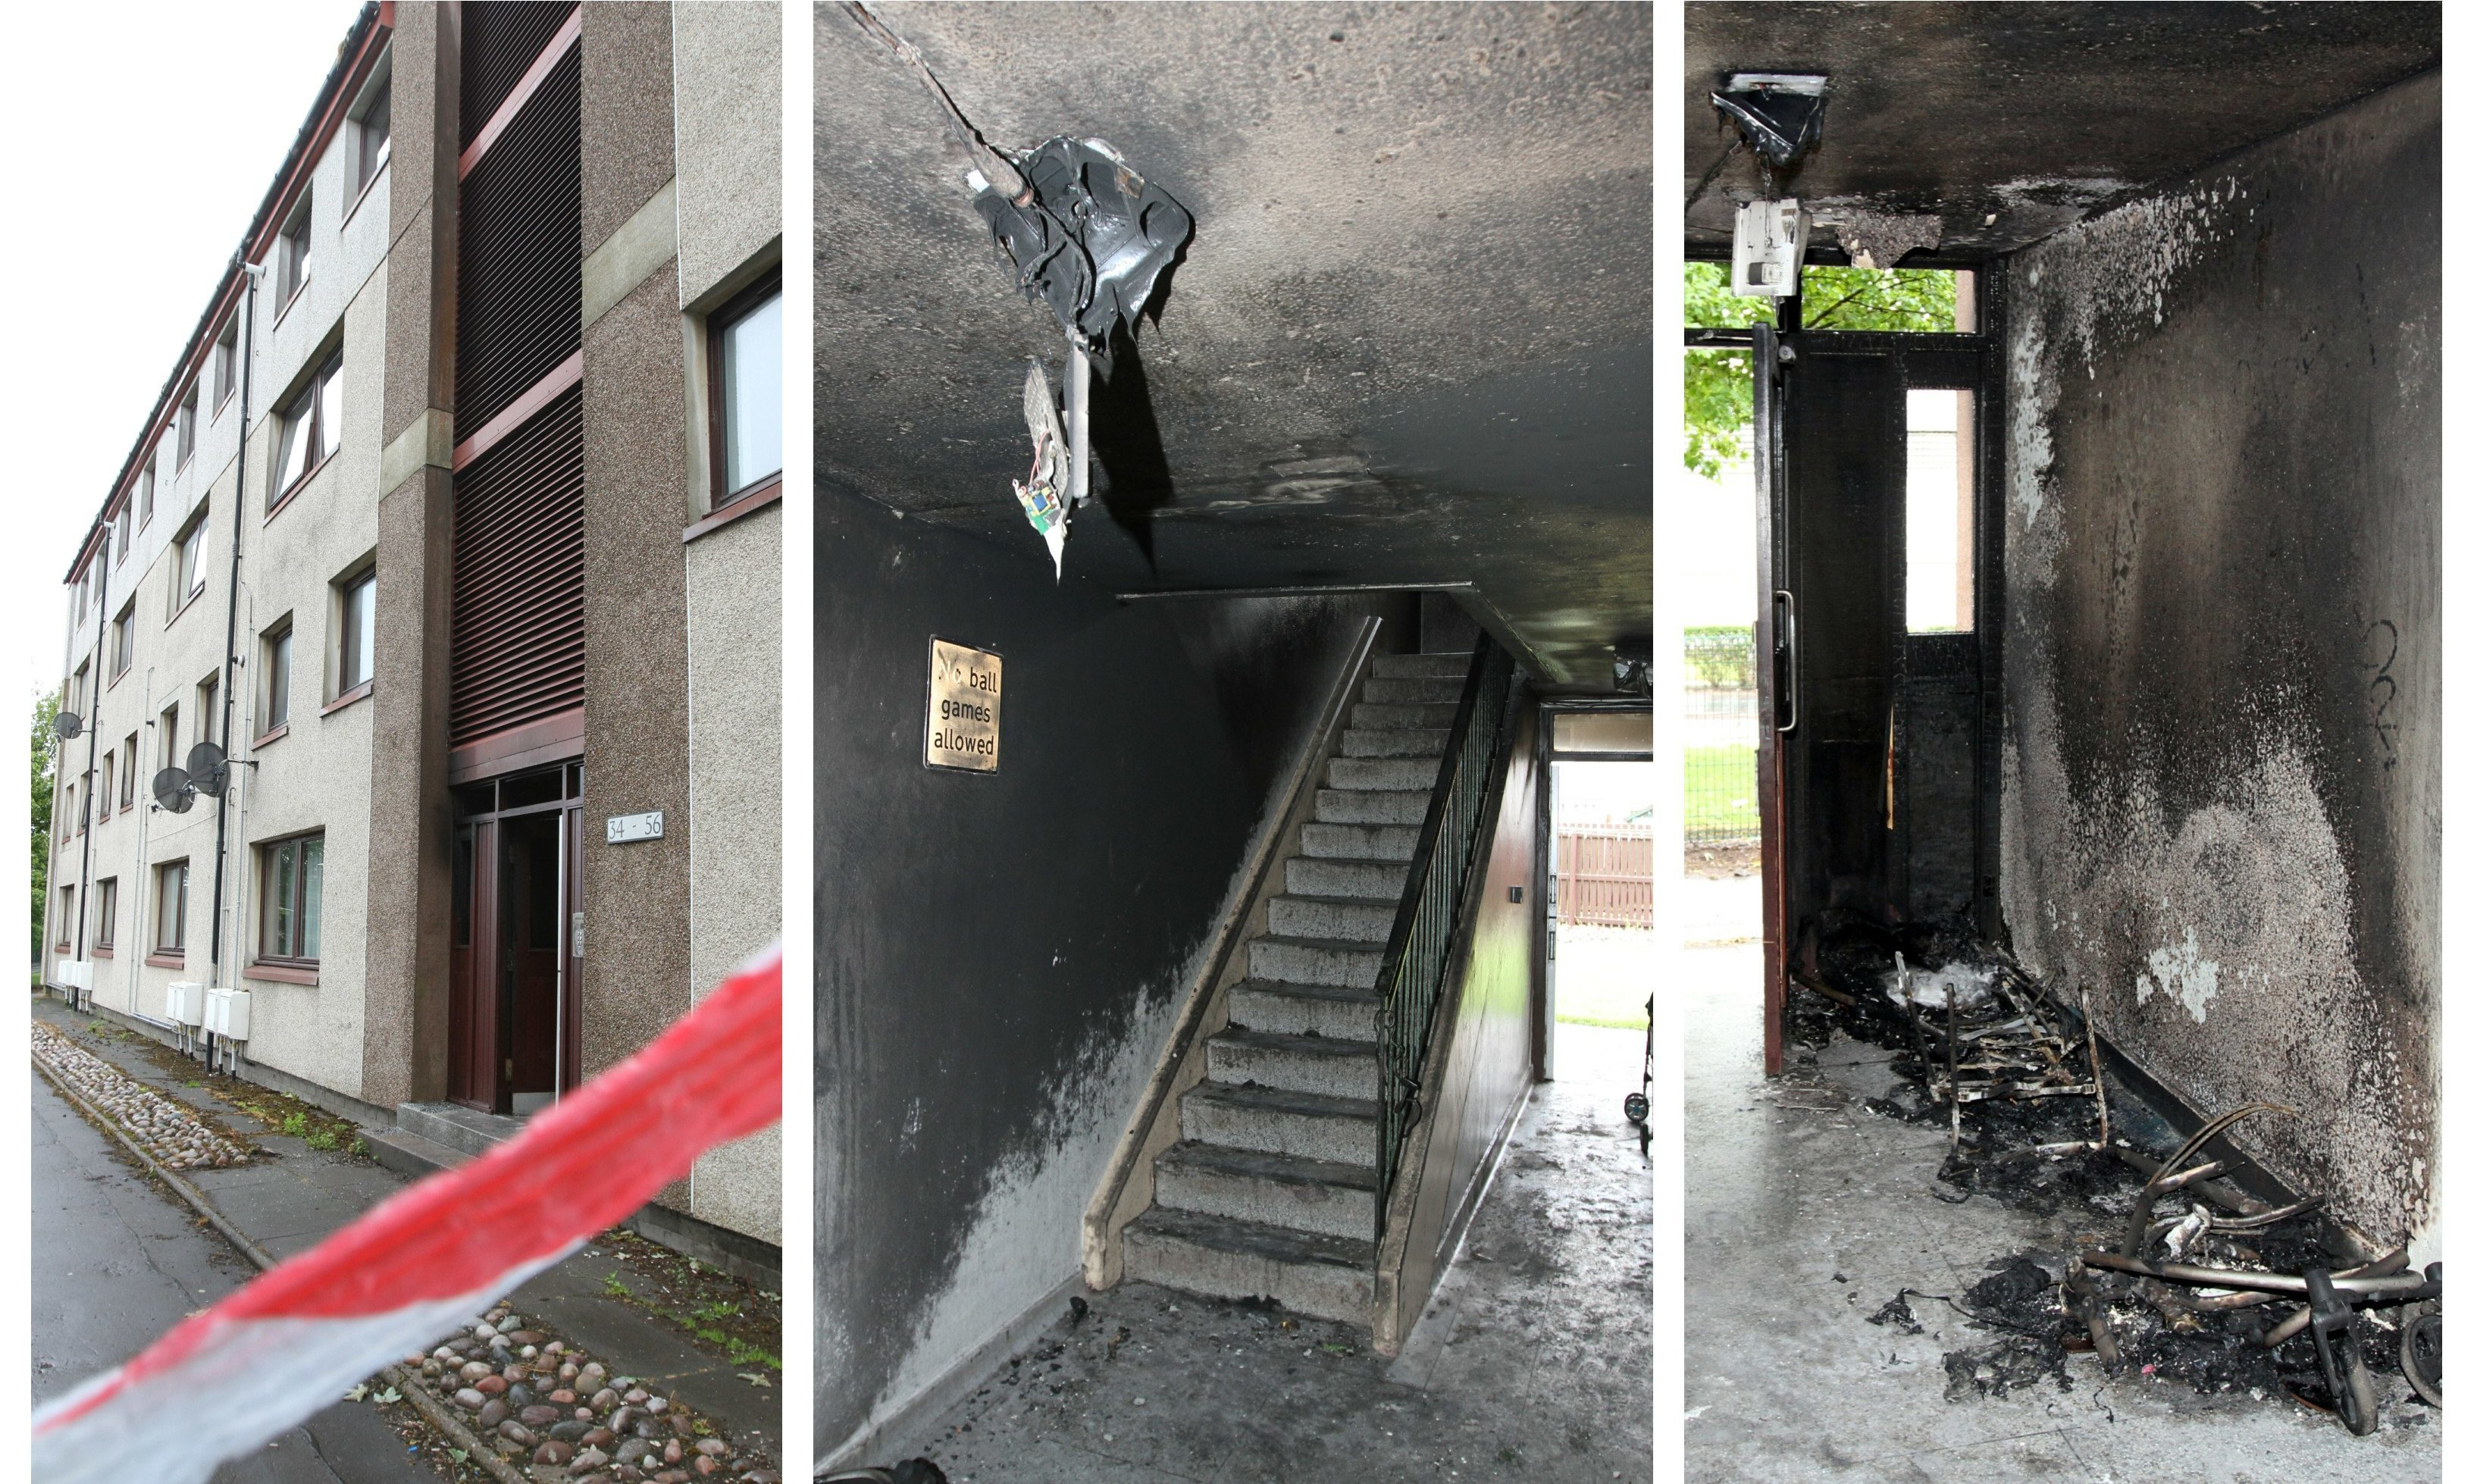 The fire caused extensive damage at Fraser Place in Arbroath.